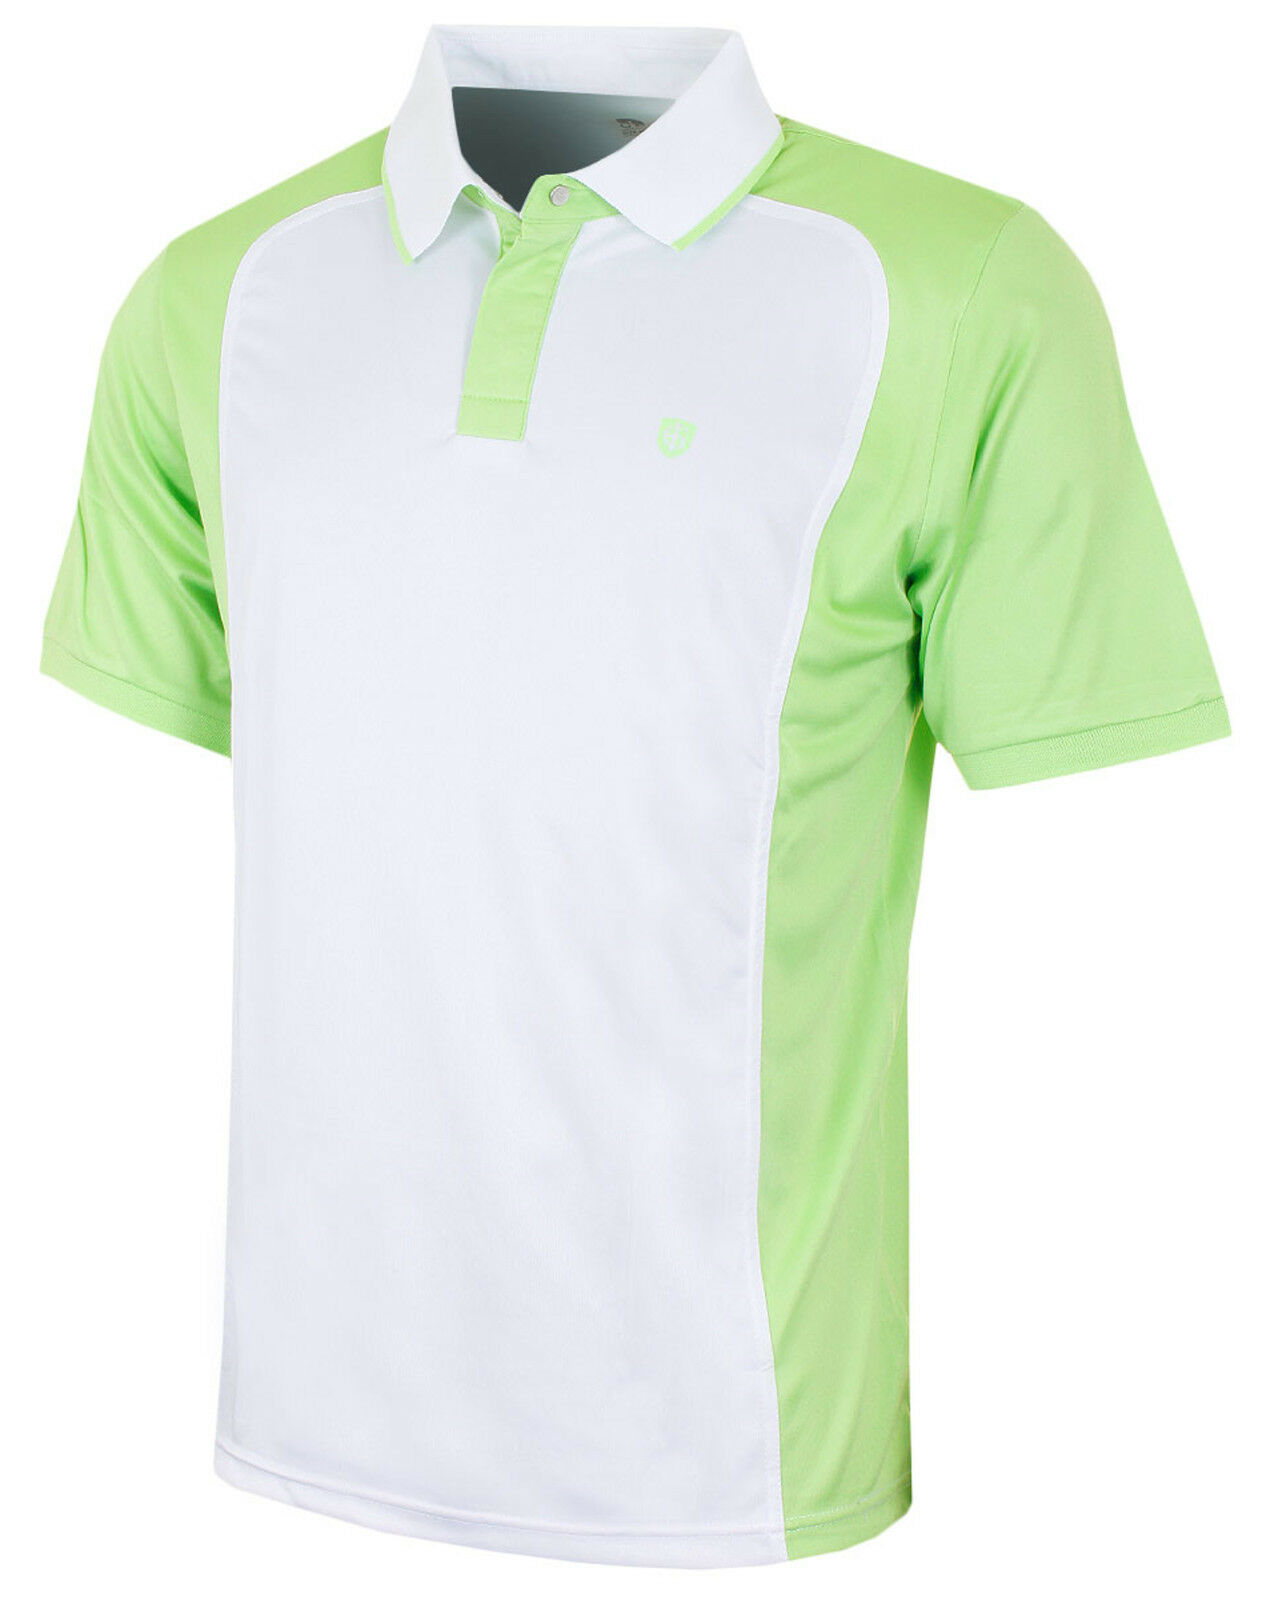 Island Green Mens Golf Polo Shirts Two Tone Short Sleeve Two Button